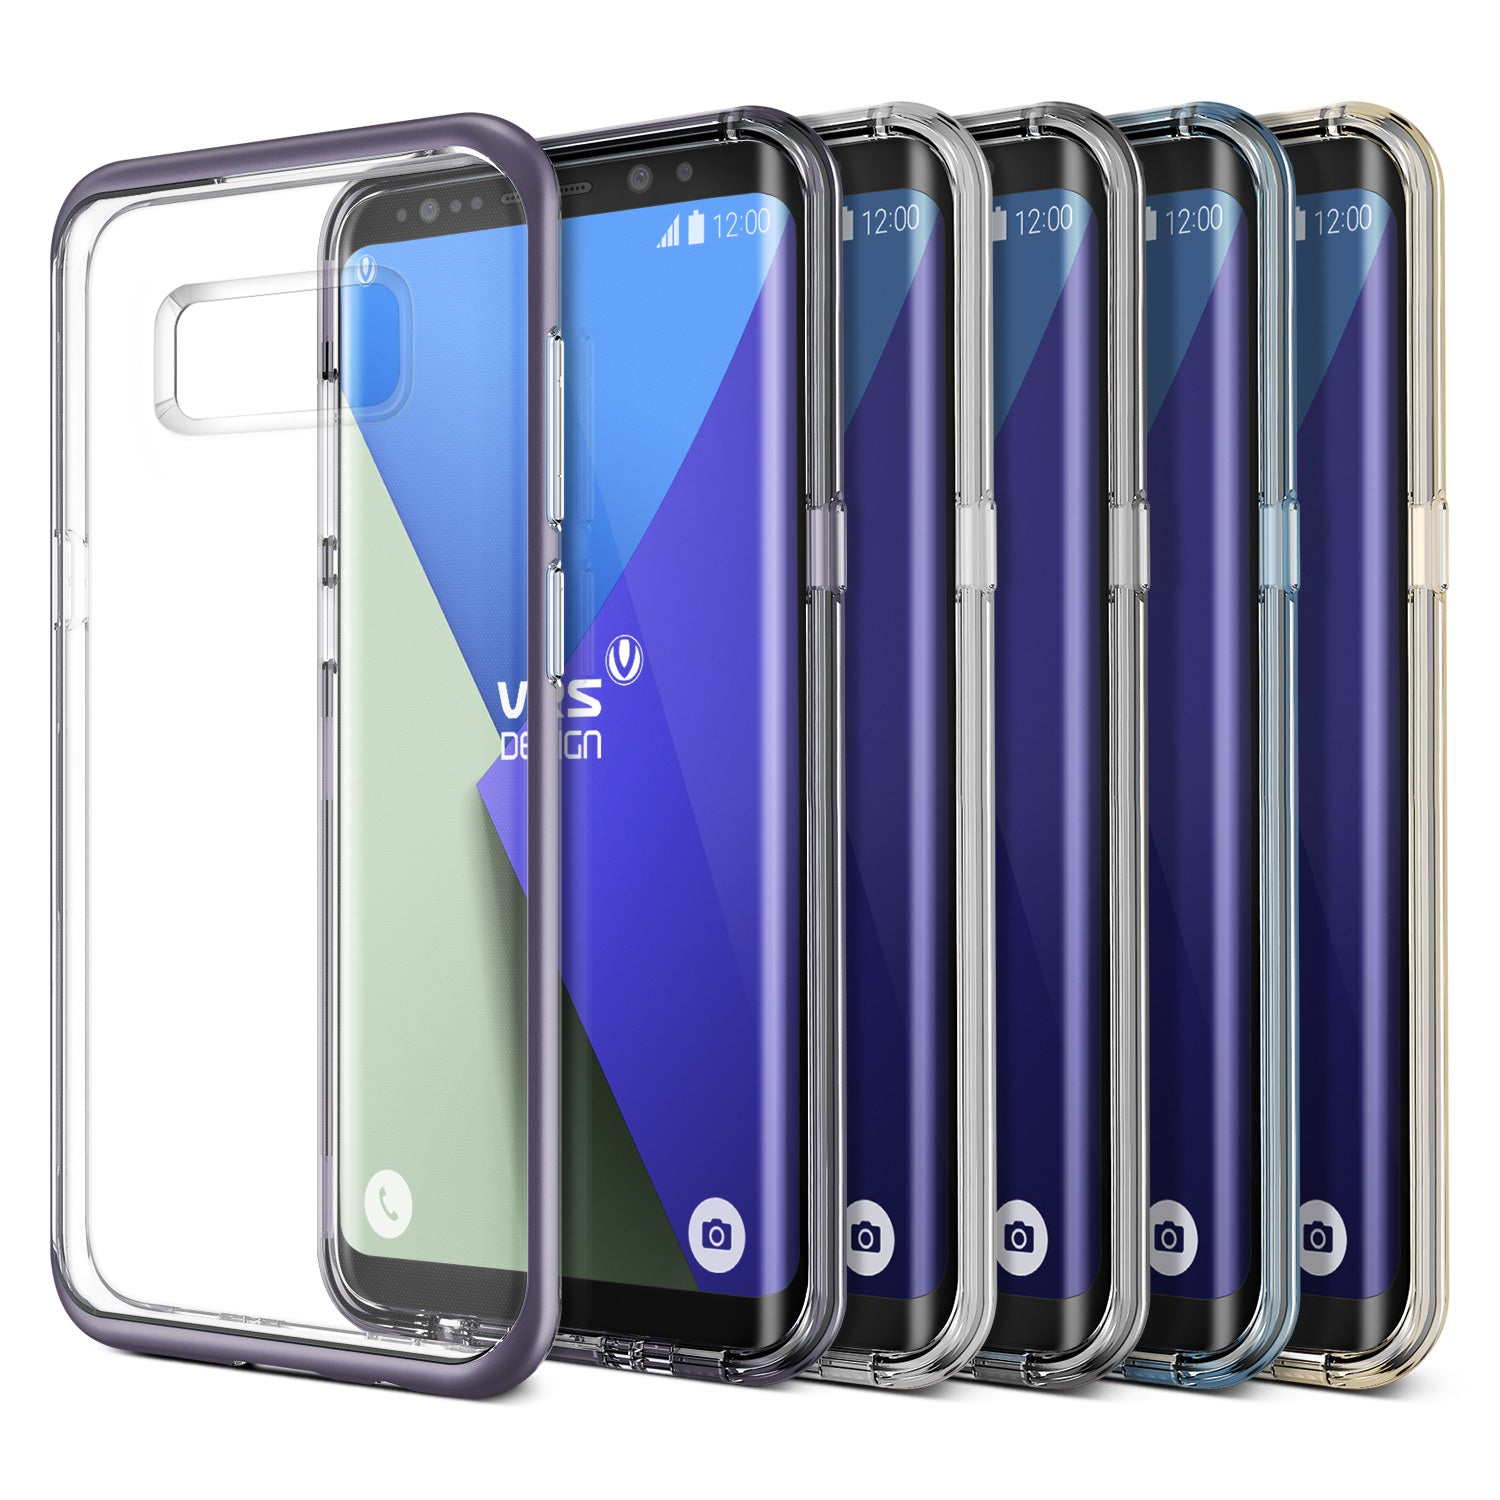 Crystal Bumper Galaxy S8 case from VRS Design